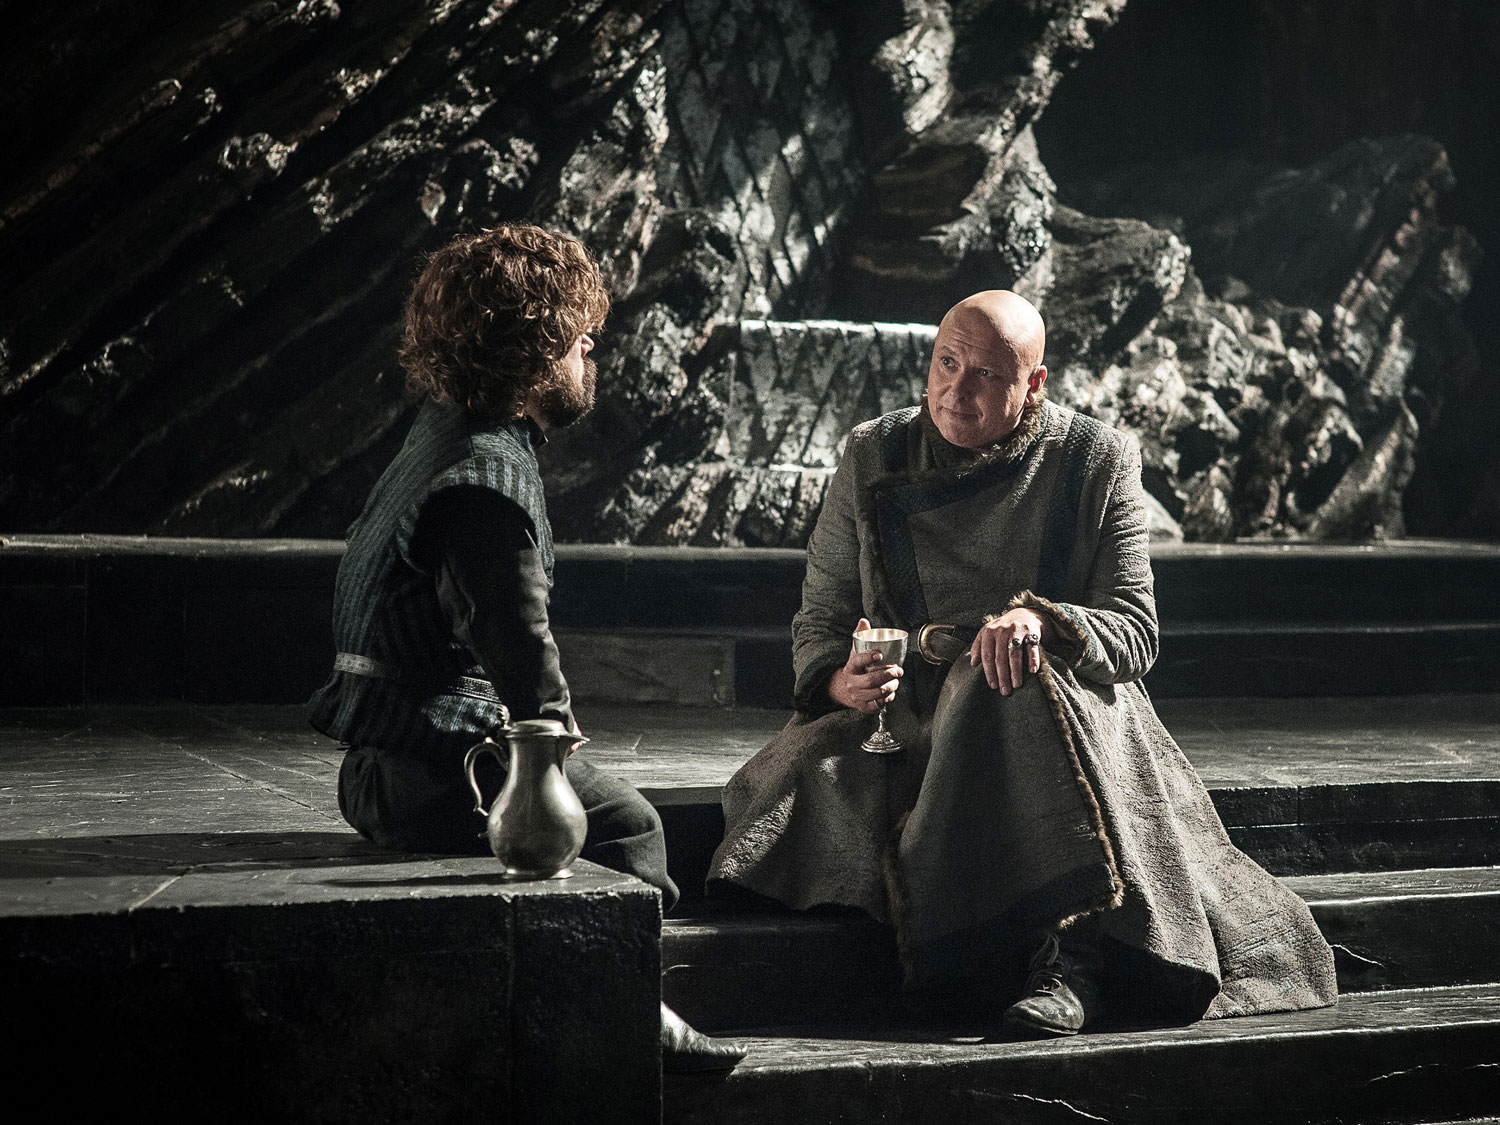 tyrion-varys-GOT-eastwatch-FT-BLOG0817.jpg